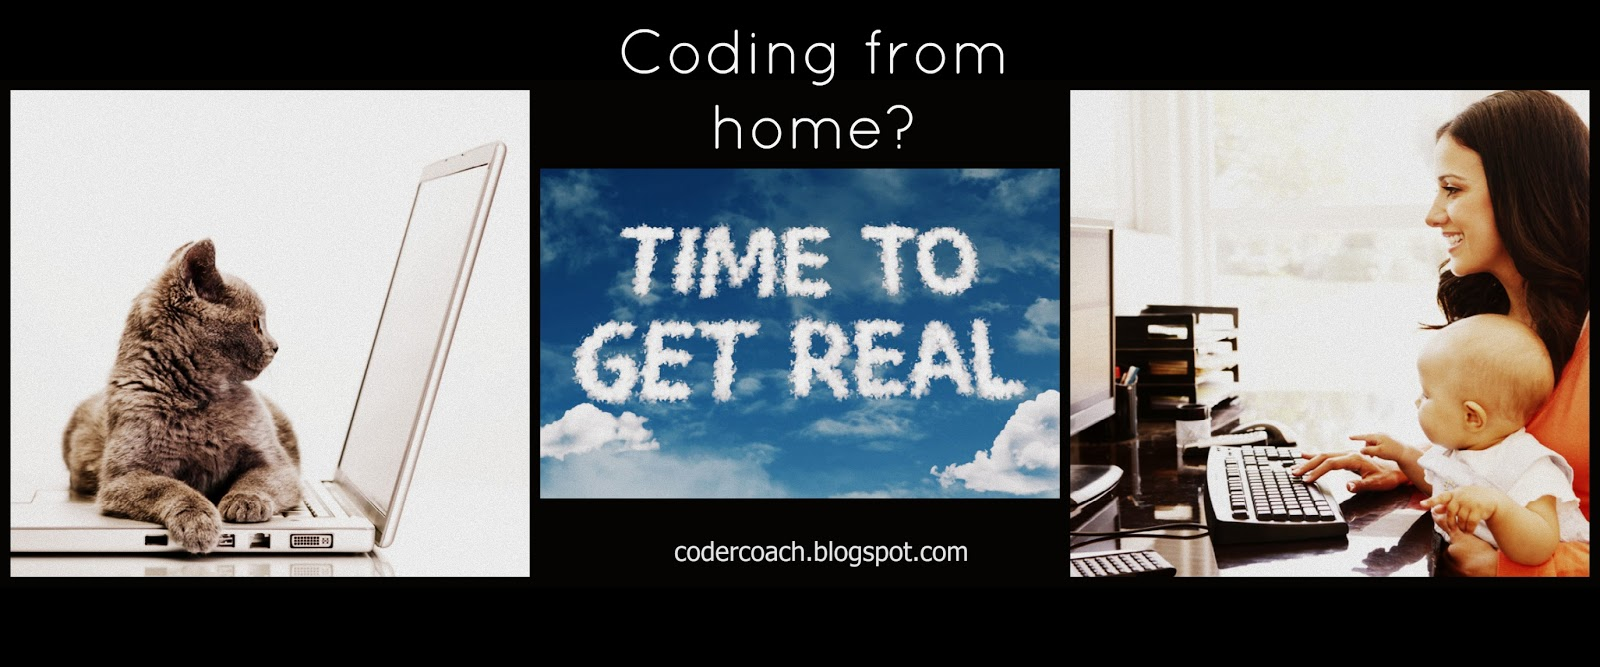 Coder Coach The Reality Of Coding From Home With Children